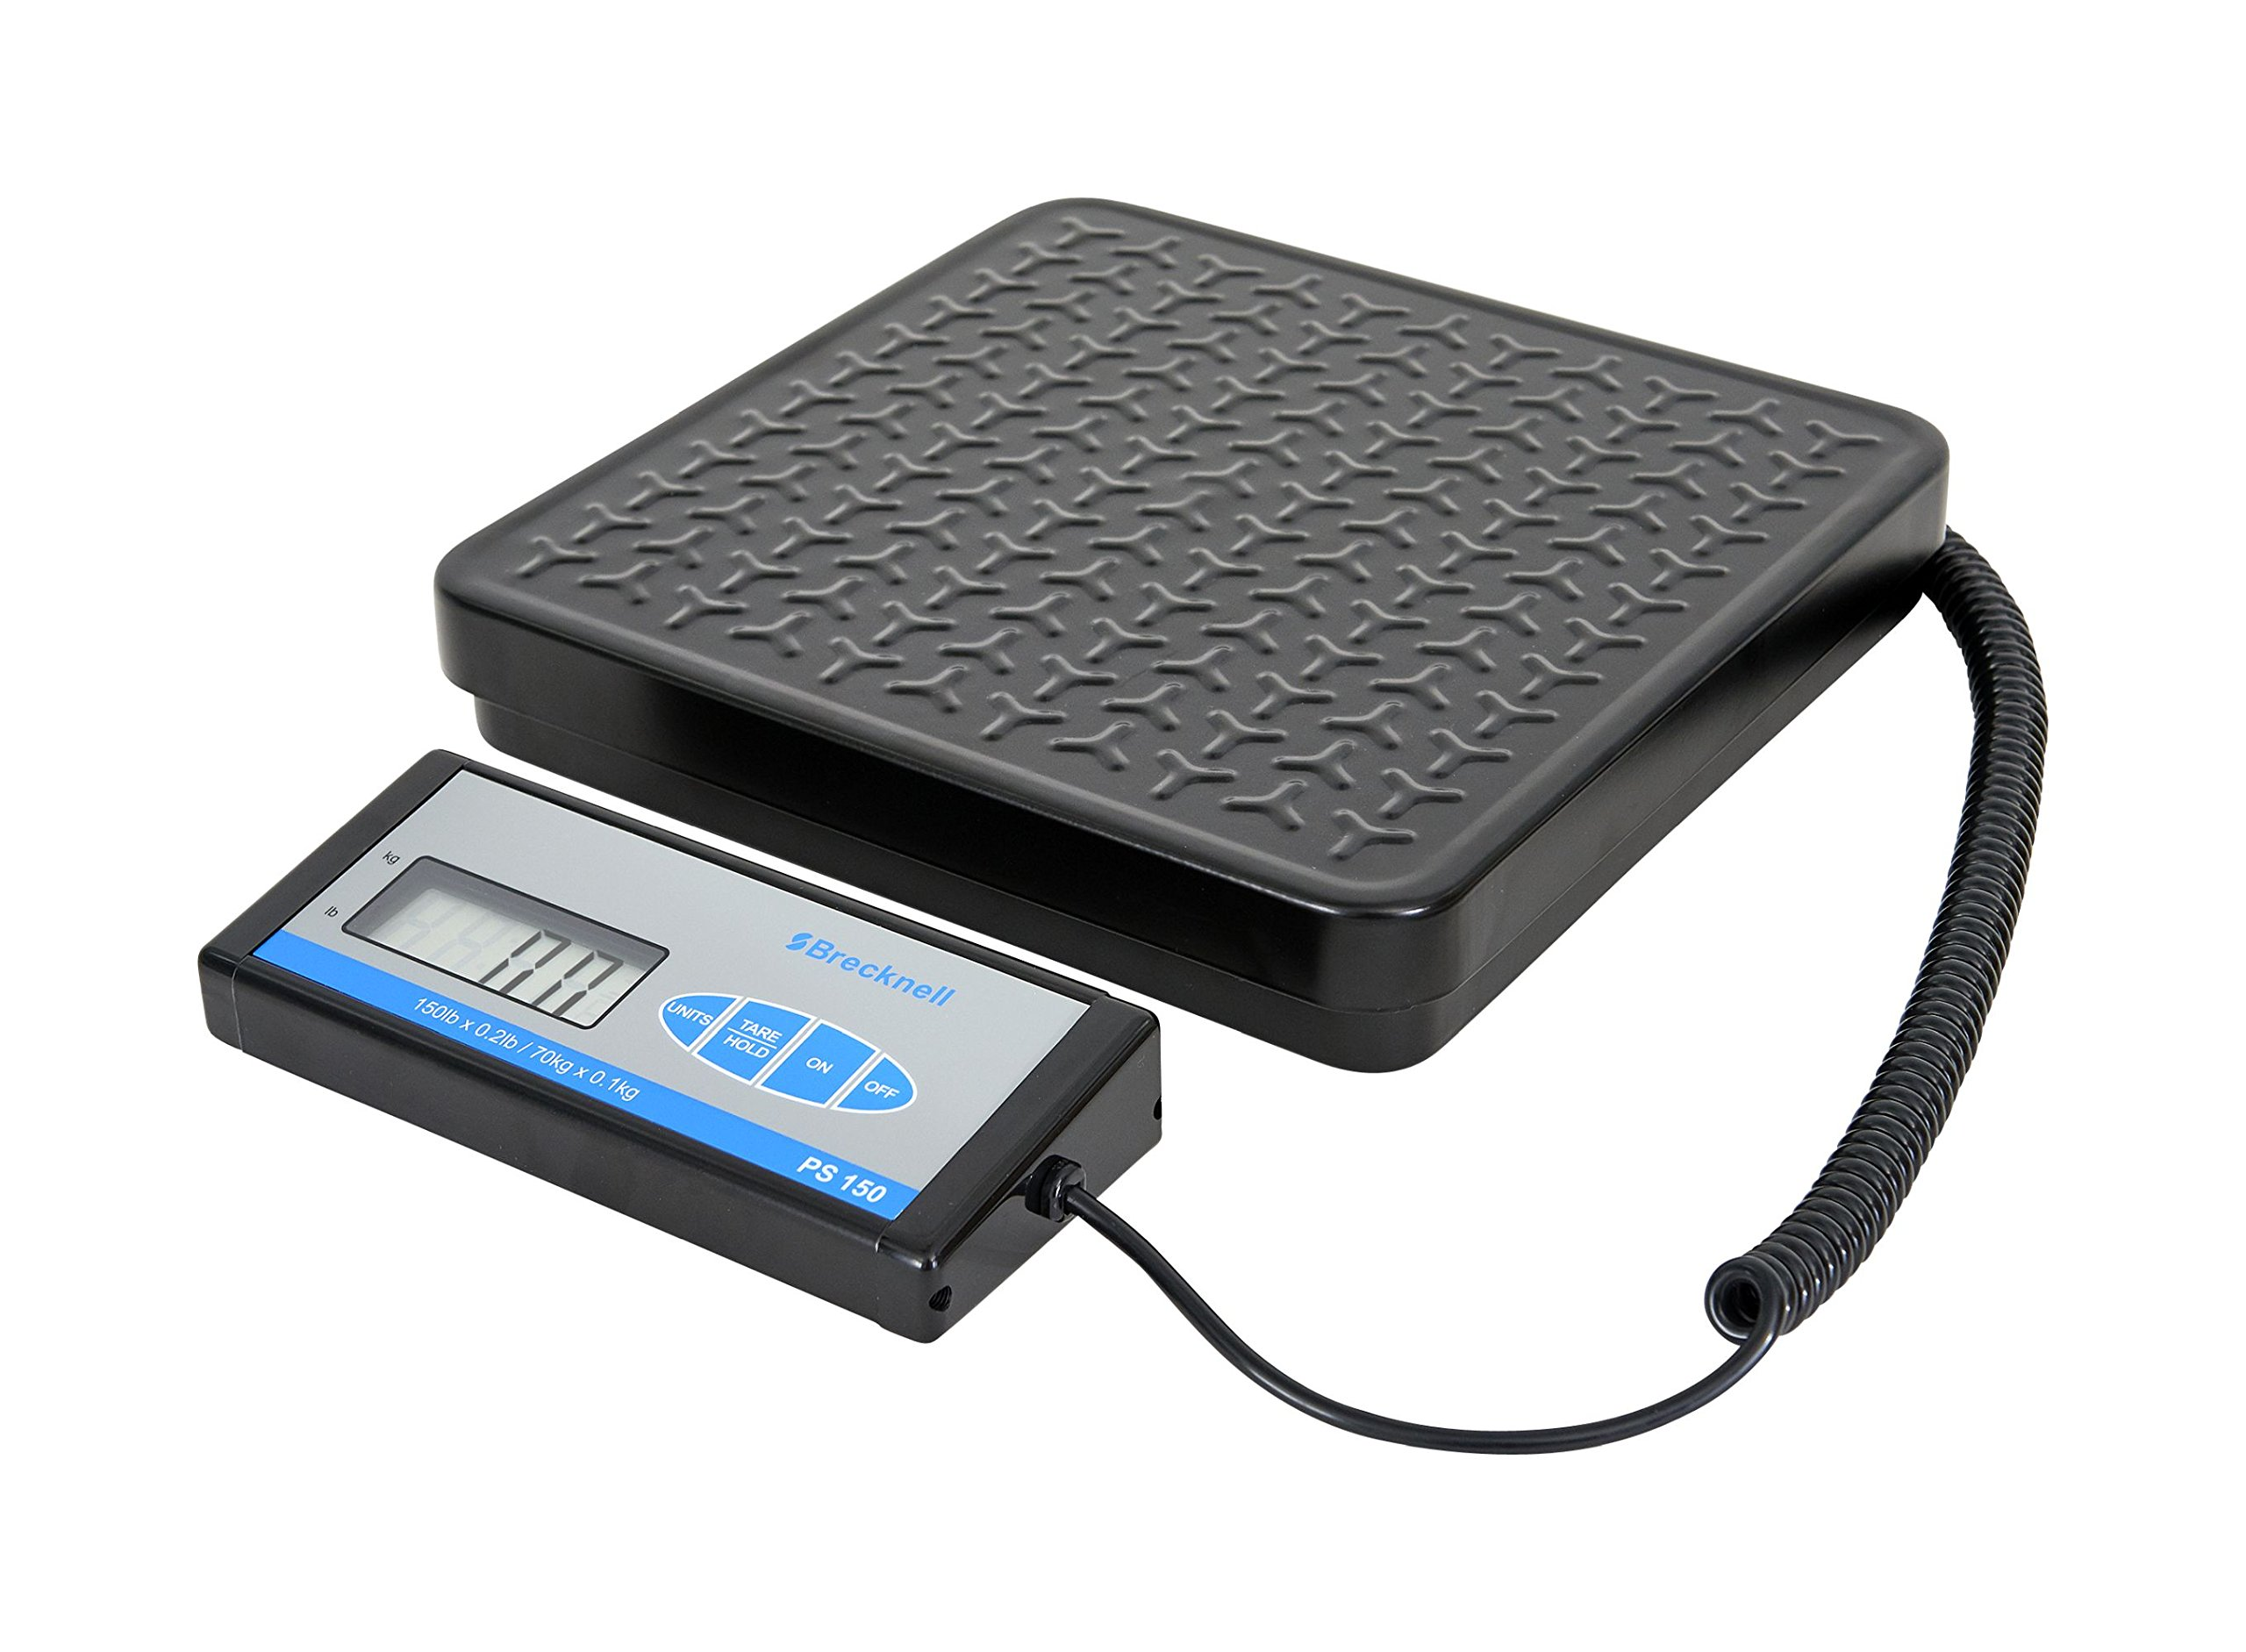 Brecknell PS150 Digital, Shipping Scale; up to 150lb. Capacity, Portable, Perfect for Commercial, Industrial, Warehouse, Postal, High Accuracy